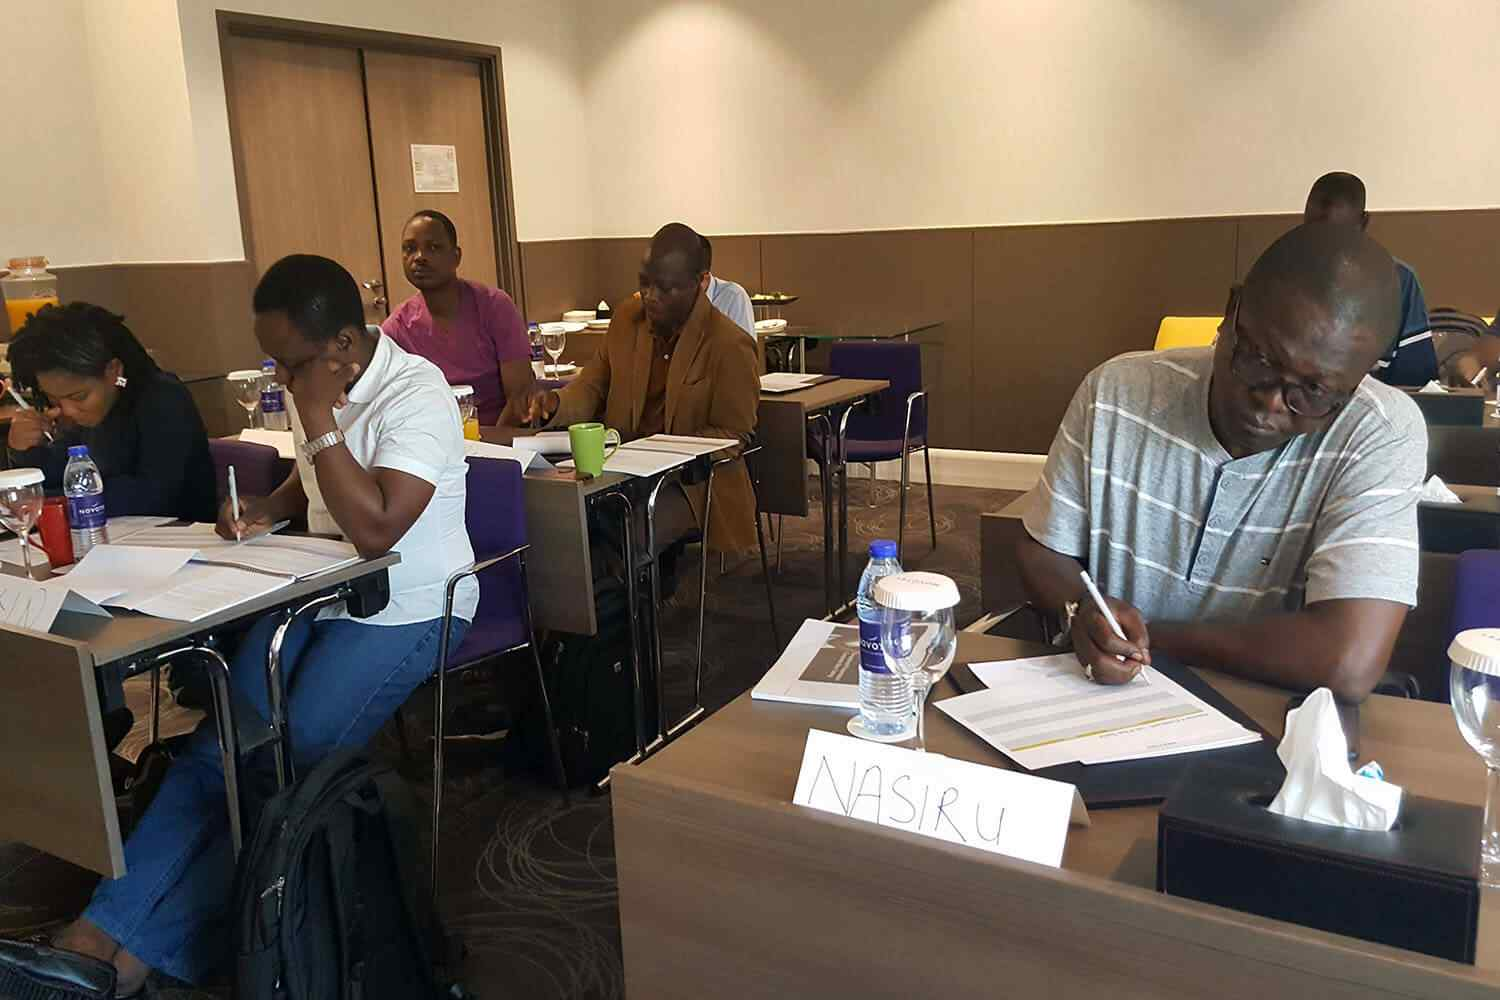 National Nigerian Petroleum Corporation hired us to train 300 engineers the art of storytelling, how to get to the point and not be boring. A very hands-on coaching transformation workshop.